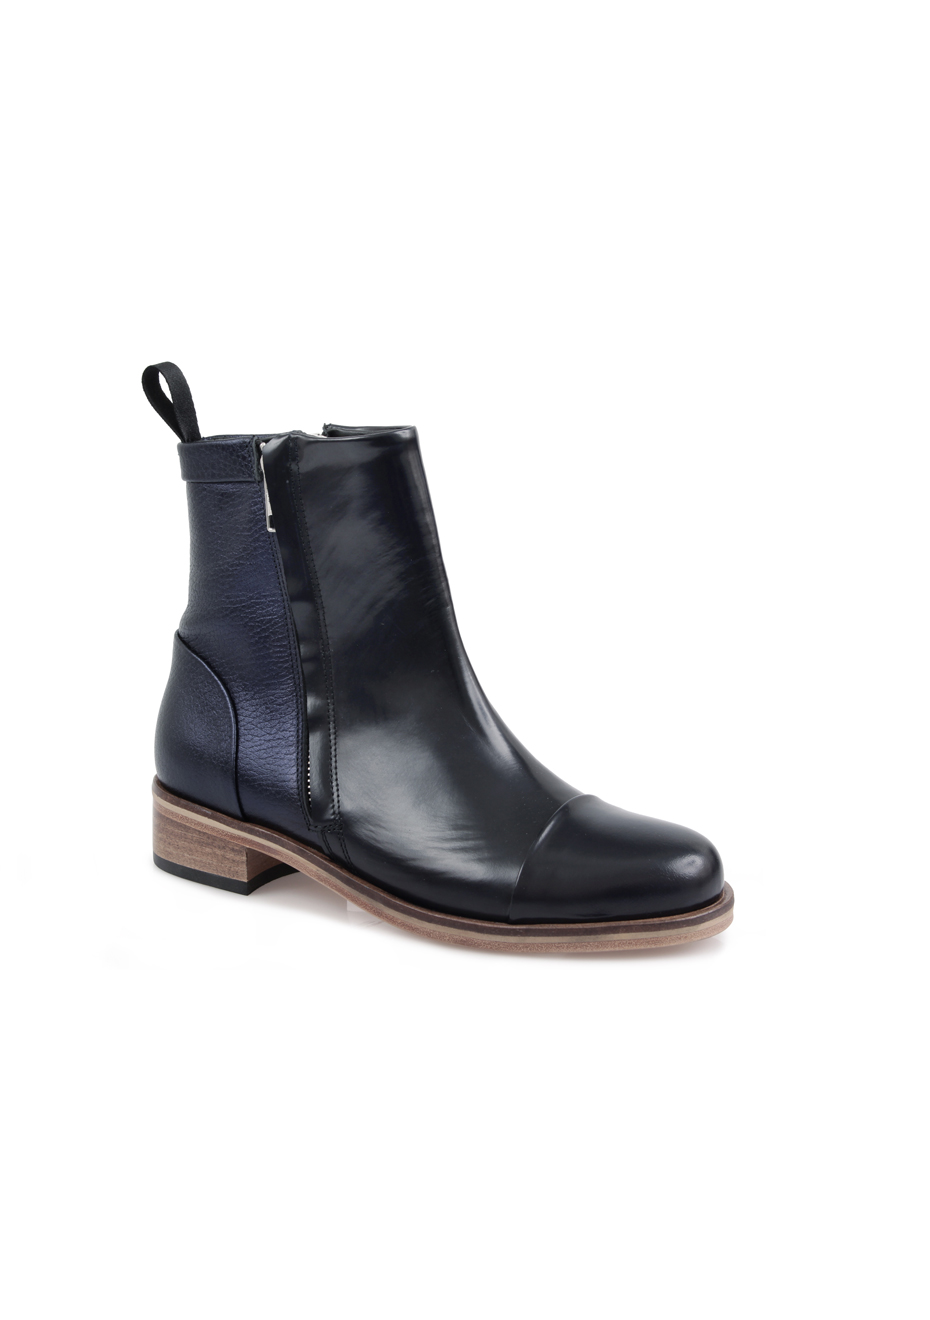 Beau Coops Stream Black Ankle Boots Women QO48223